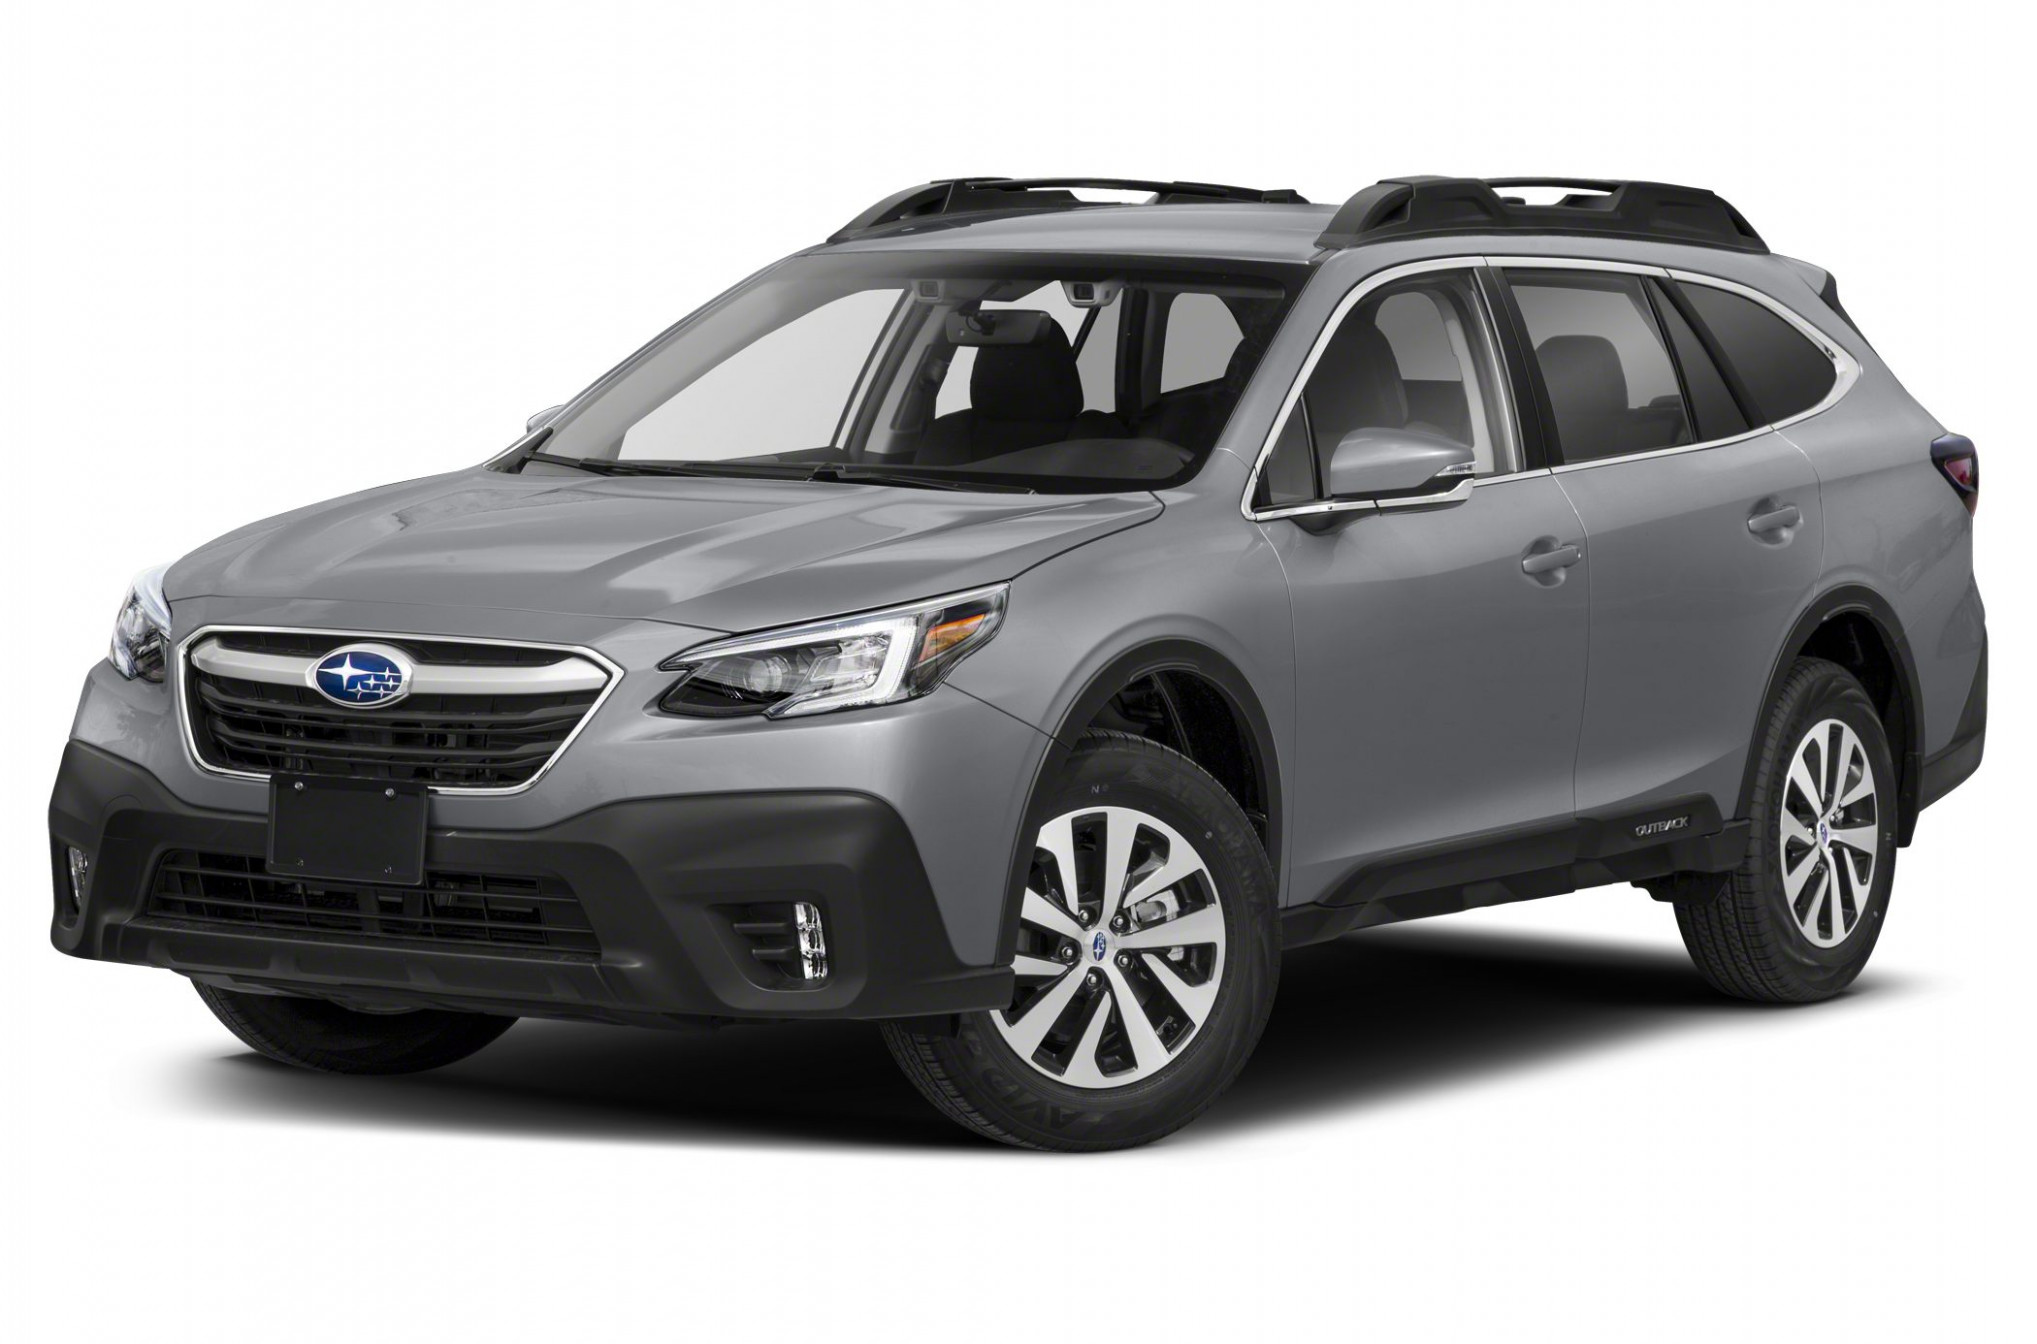 10 Subaru Outback Onyx Edition XT 10dr All-wheel Drive Pricing and Options   2020 Subaru Outback Invoice